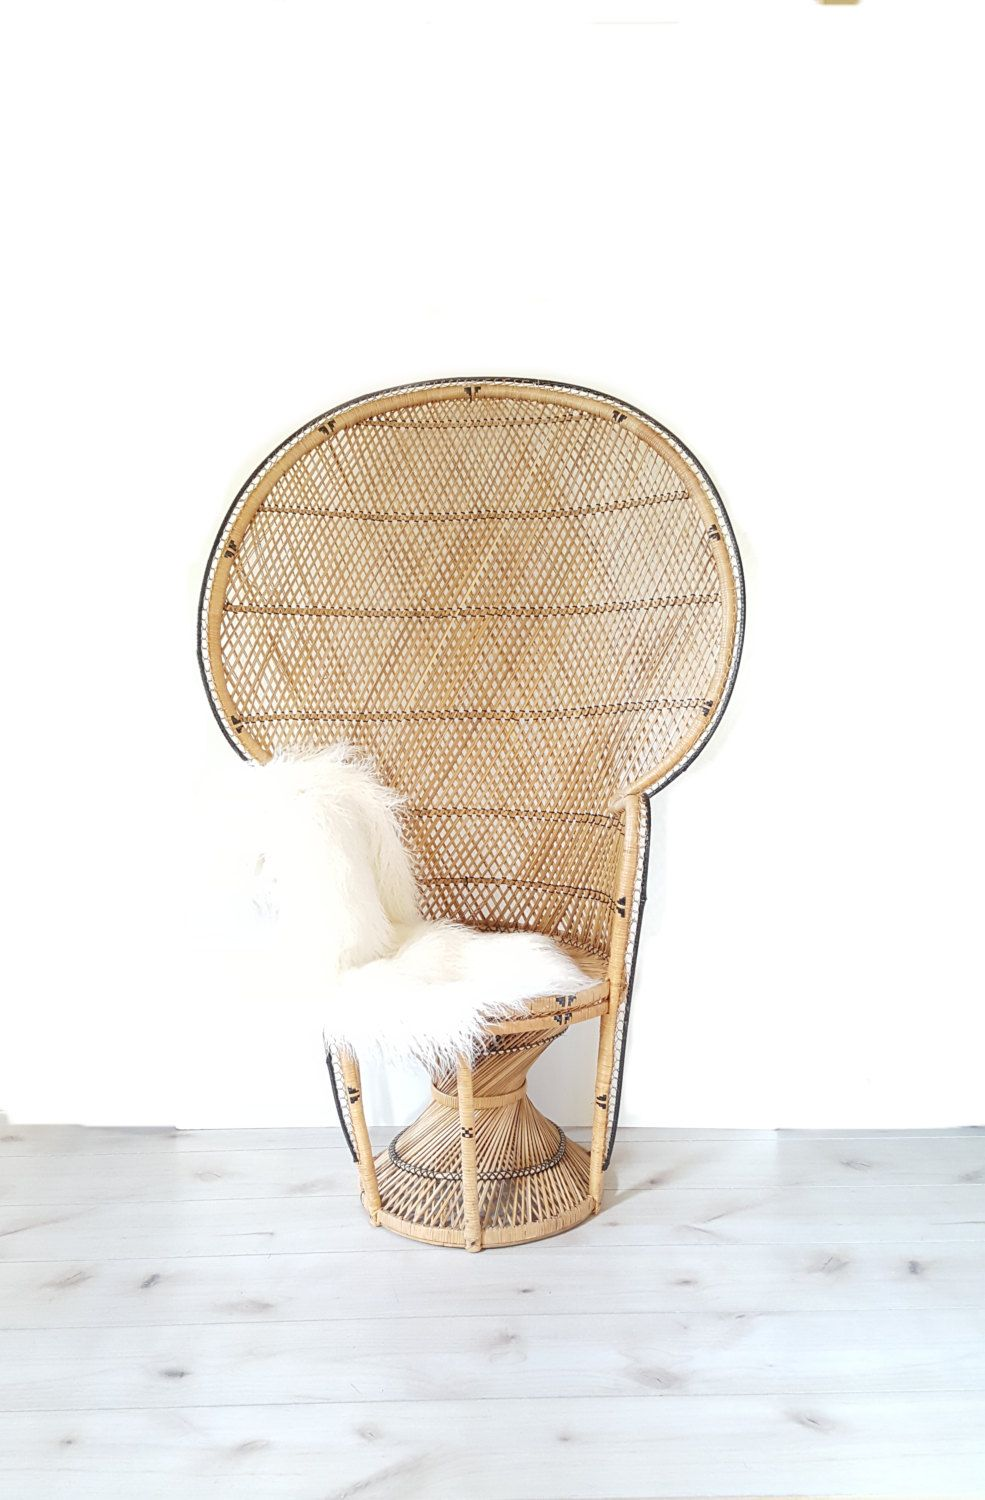 Large Fan Peacock Chair, Rattan Full Size, Woven Handmade 70s Wicker Chair,  Large Bohemian Style Peacock Chair By LUCKYHOMEFINDS On Etsy